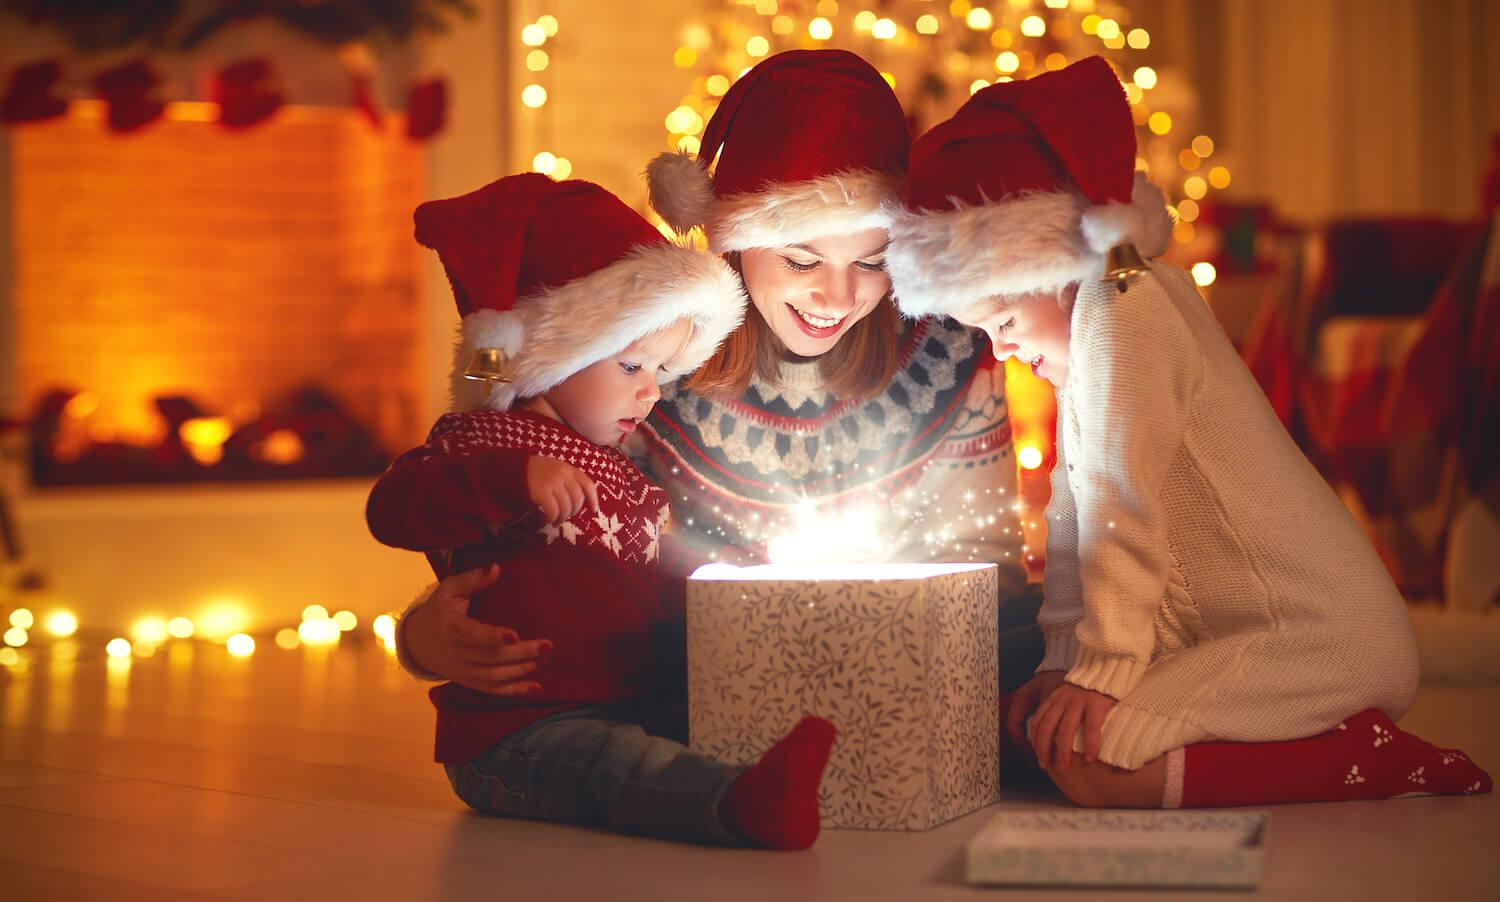 Christmas Memory Making Cell Phone Photographer!